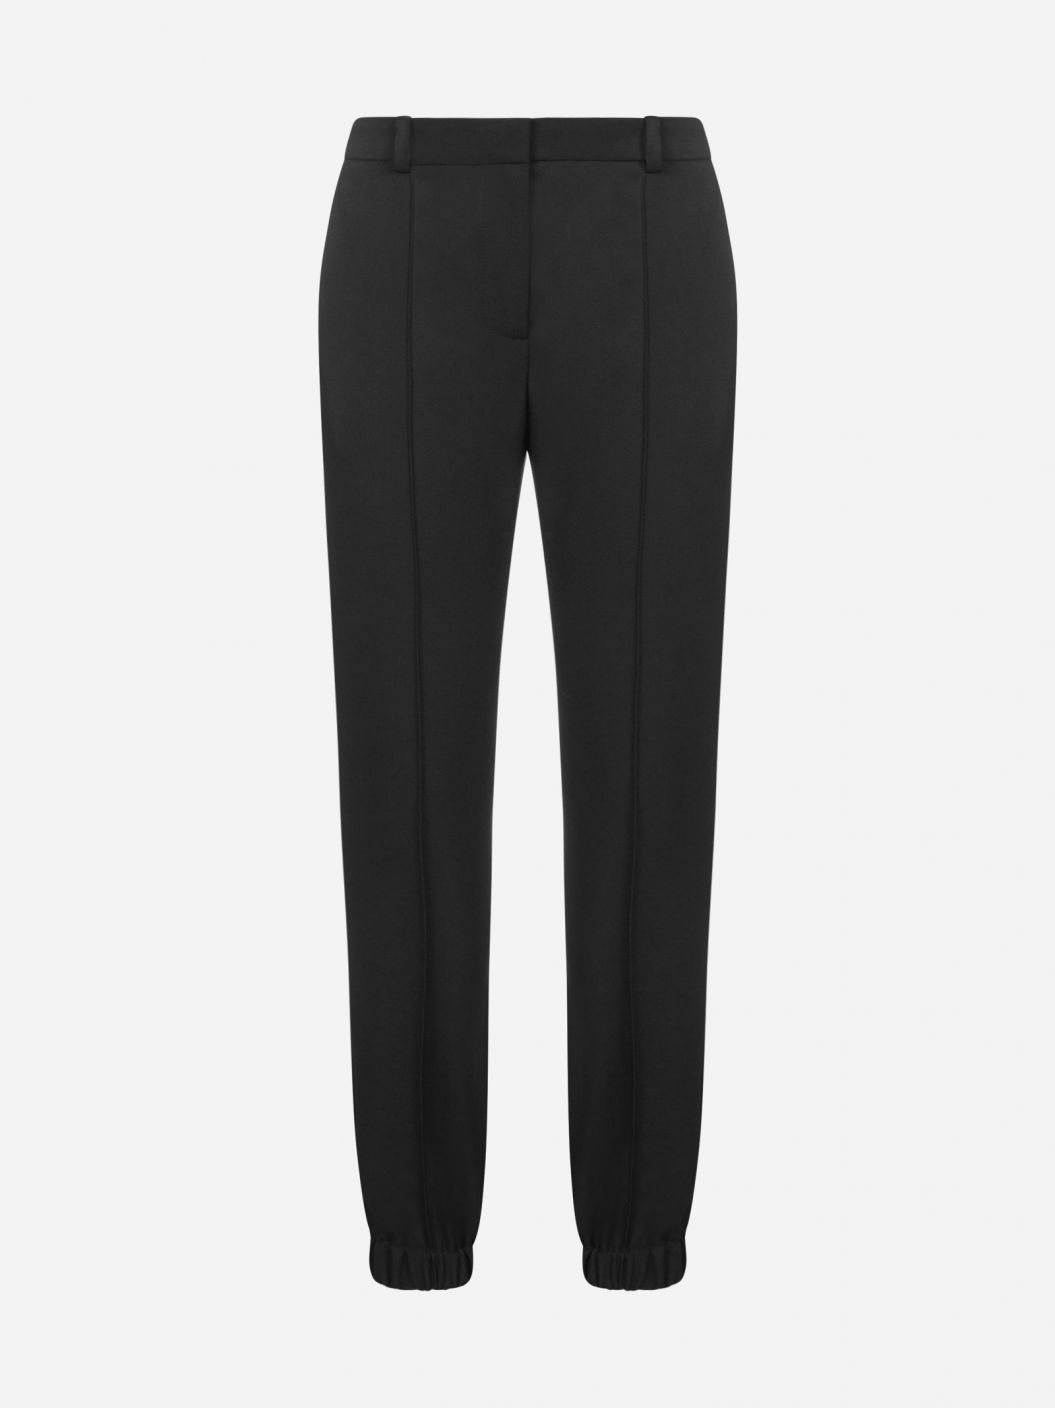 Tailored jogger wool trousers